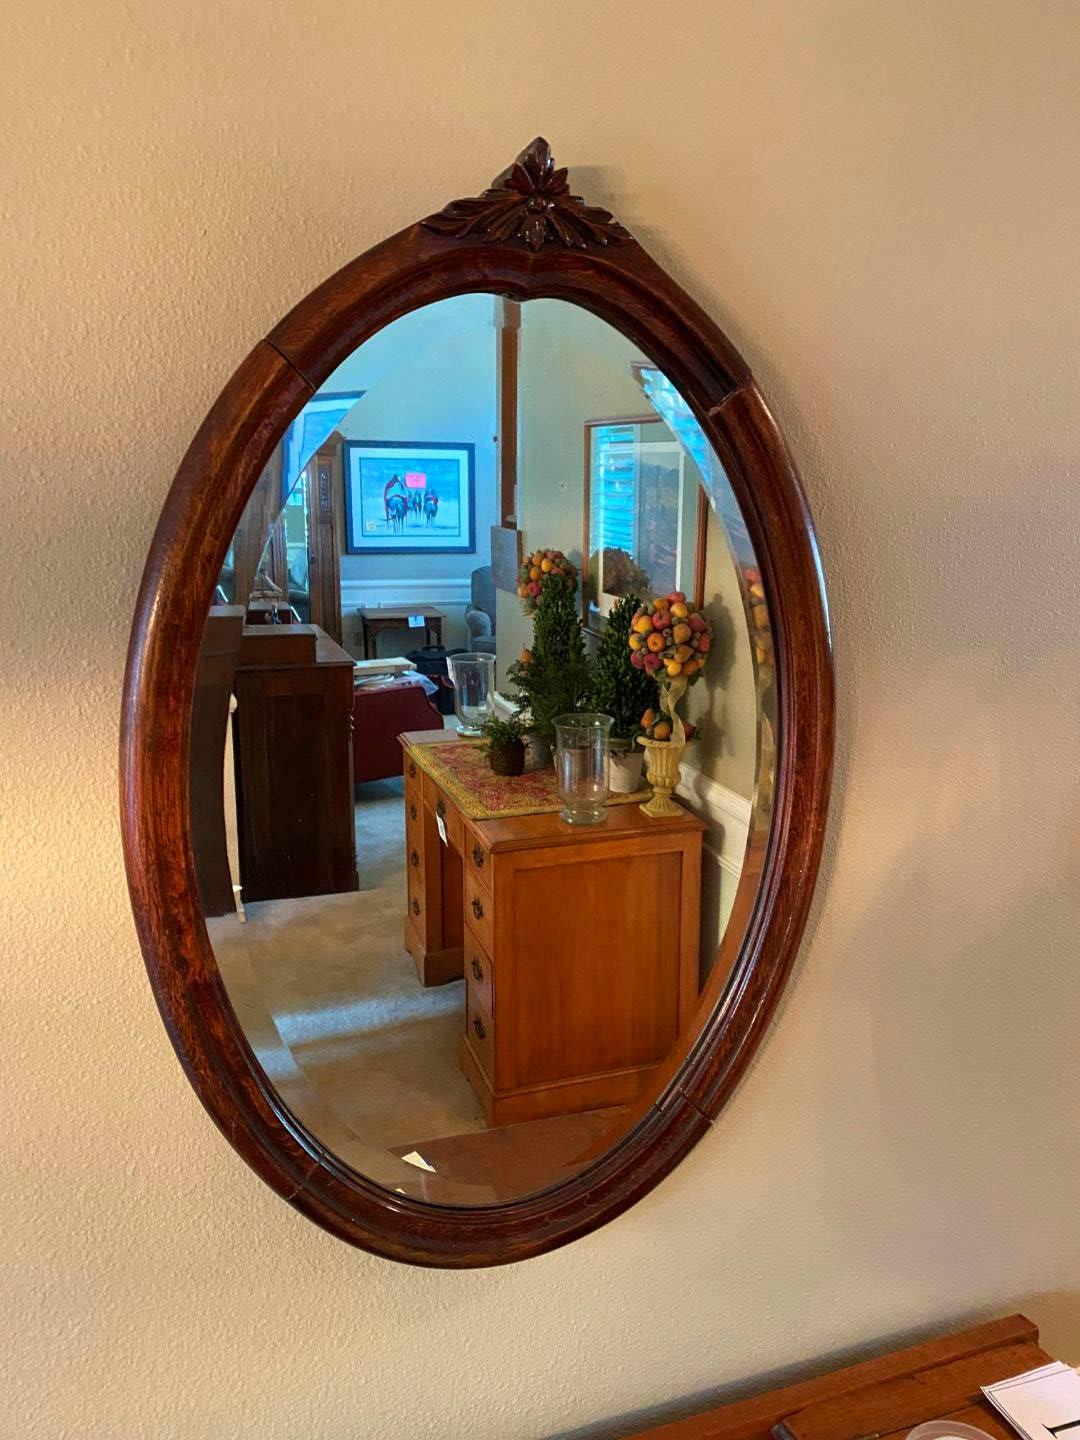 Lot # 18 - Beautiful Antique Wood Framed Mirror from William Peter Hohenschuh in Iowa City, Iowa (main image)